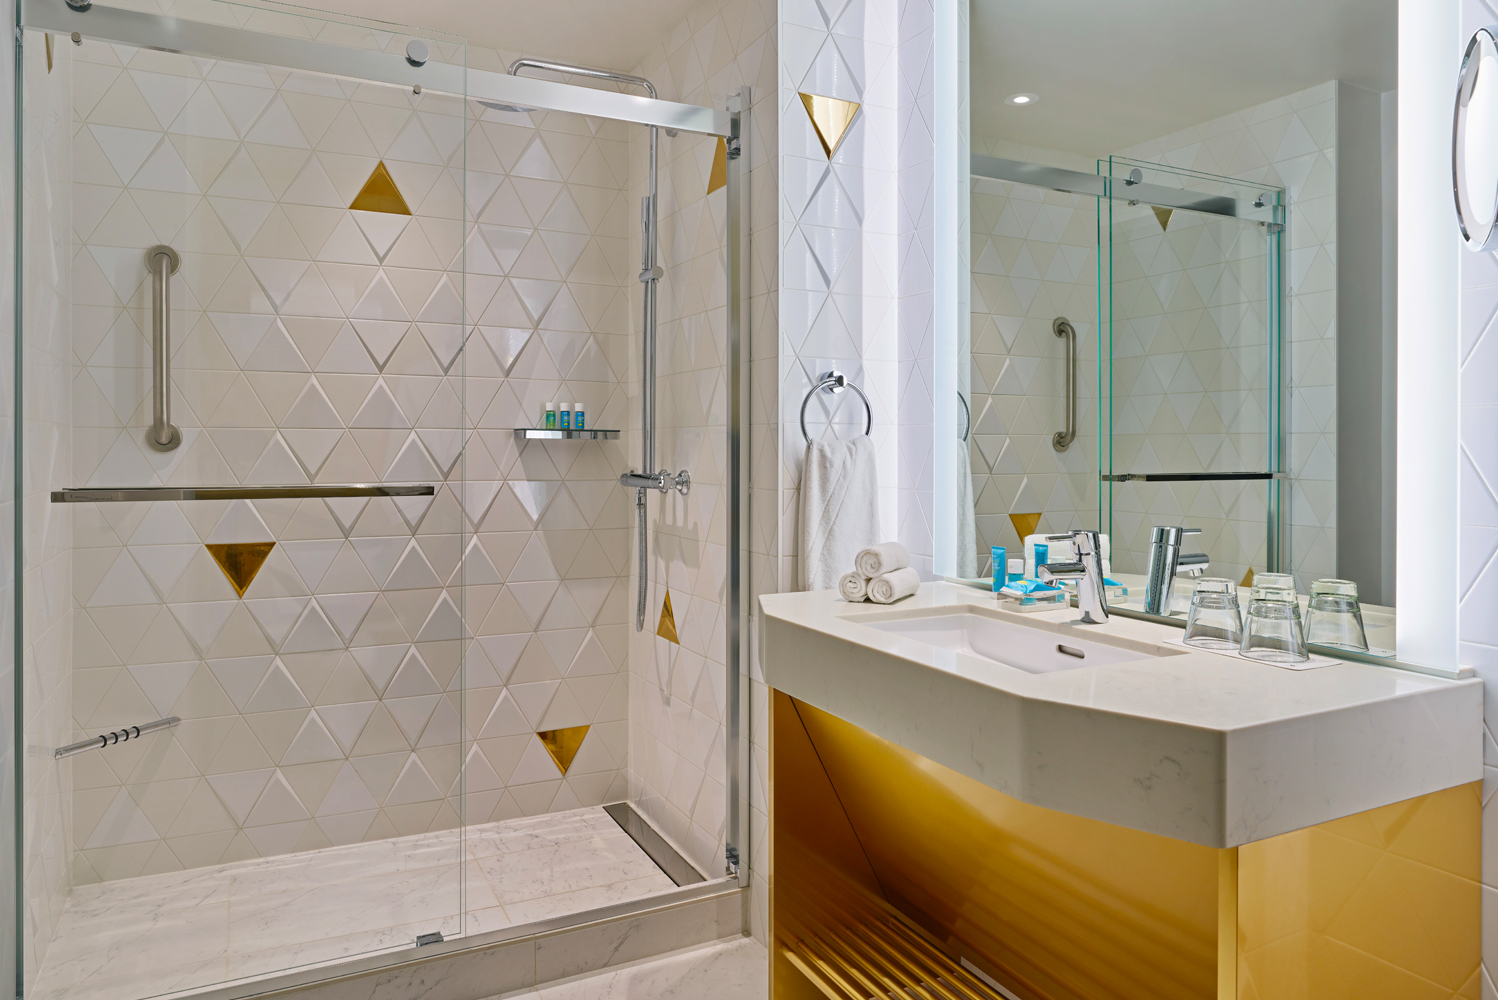 The fog is also represented in the gold-flaked white and gray bathroom tiles, which also depict San Francisco's topography.